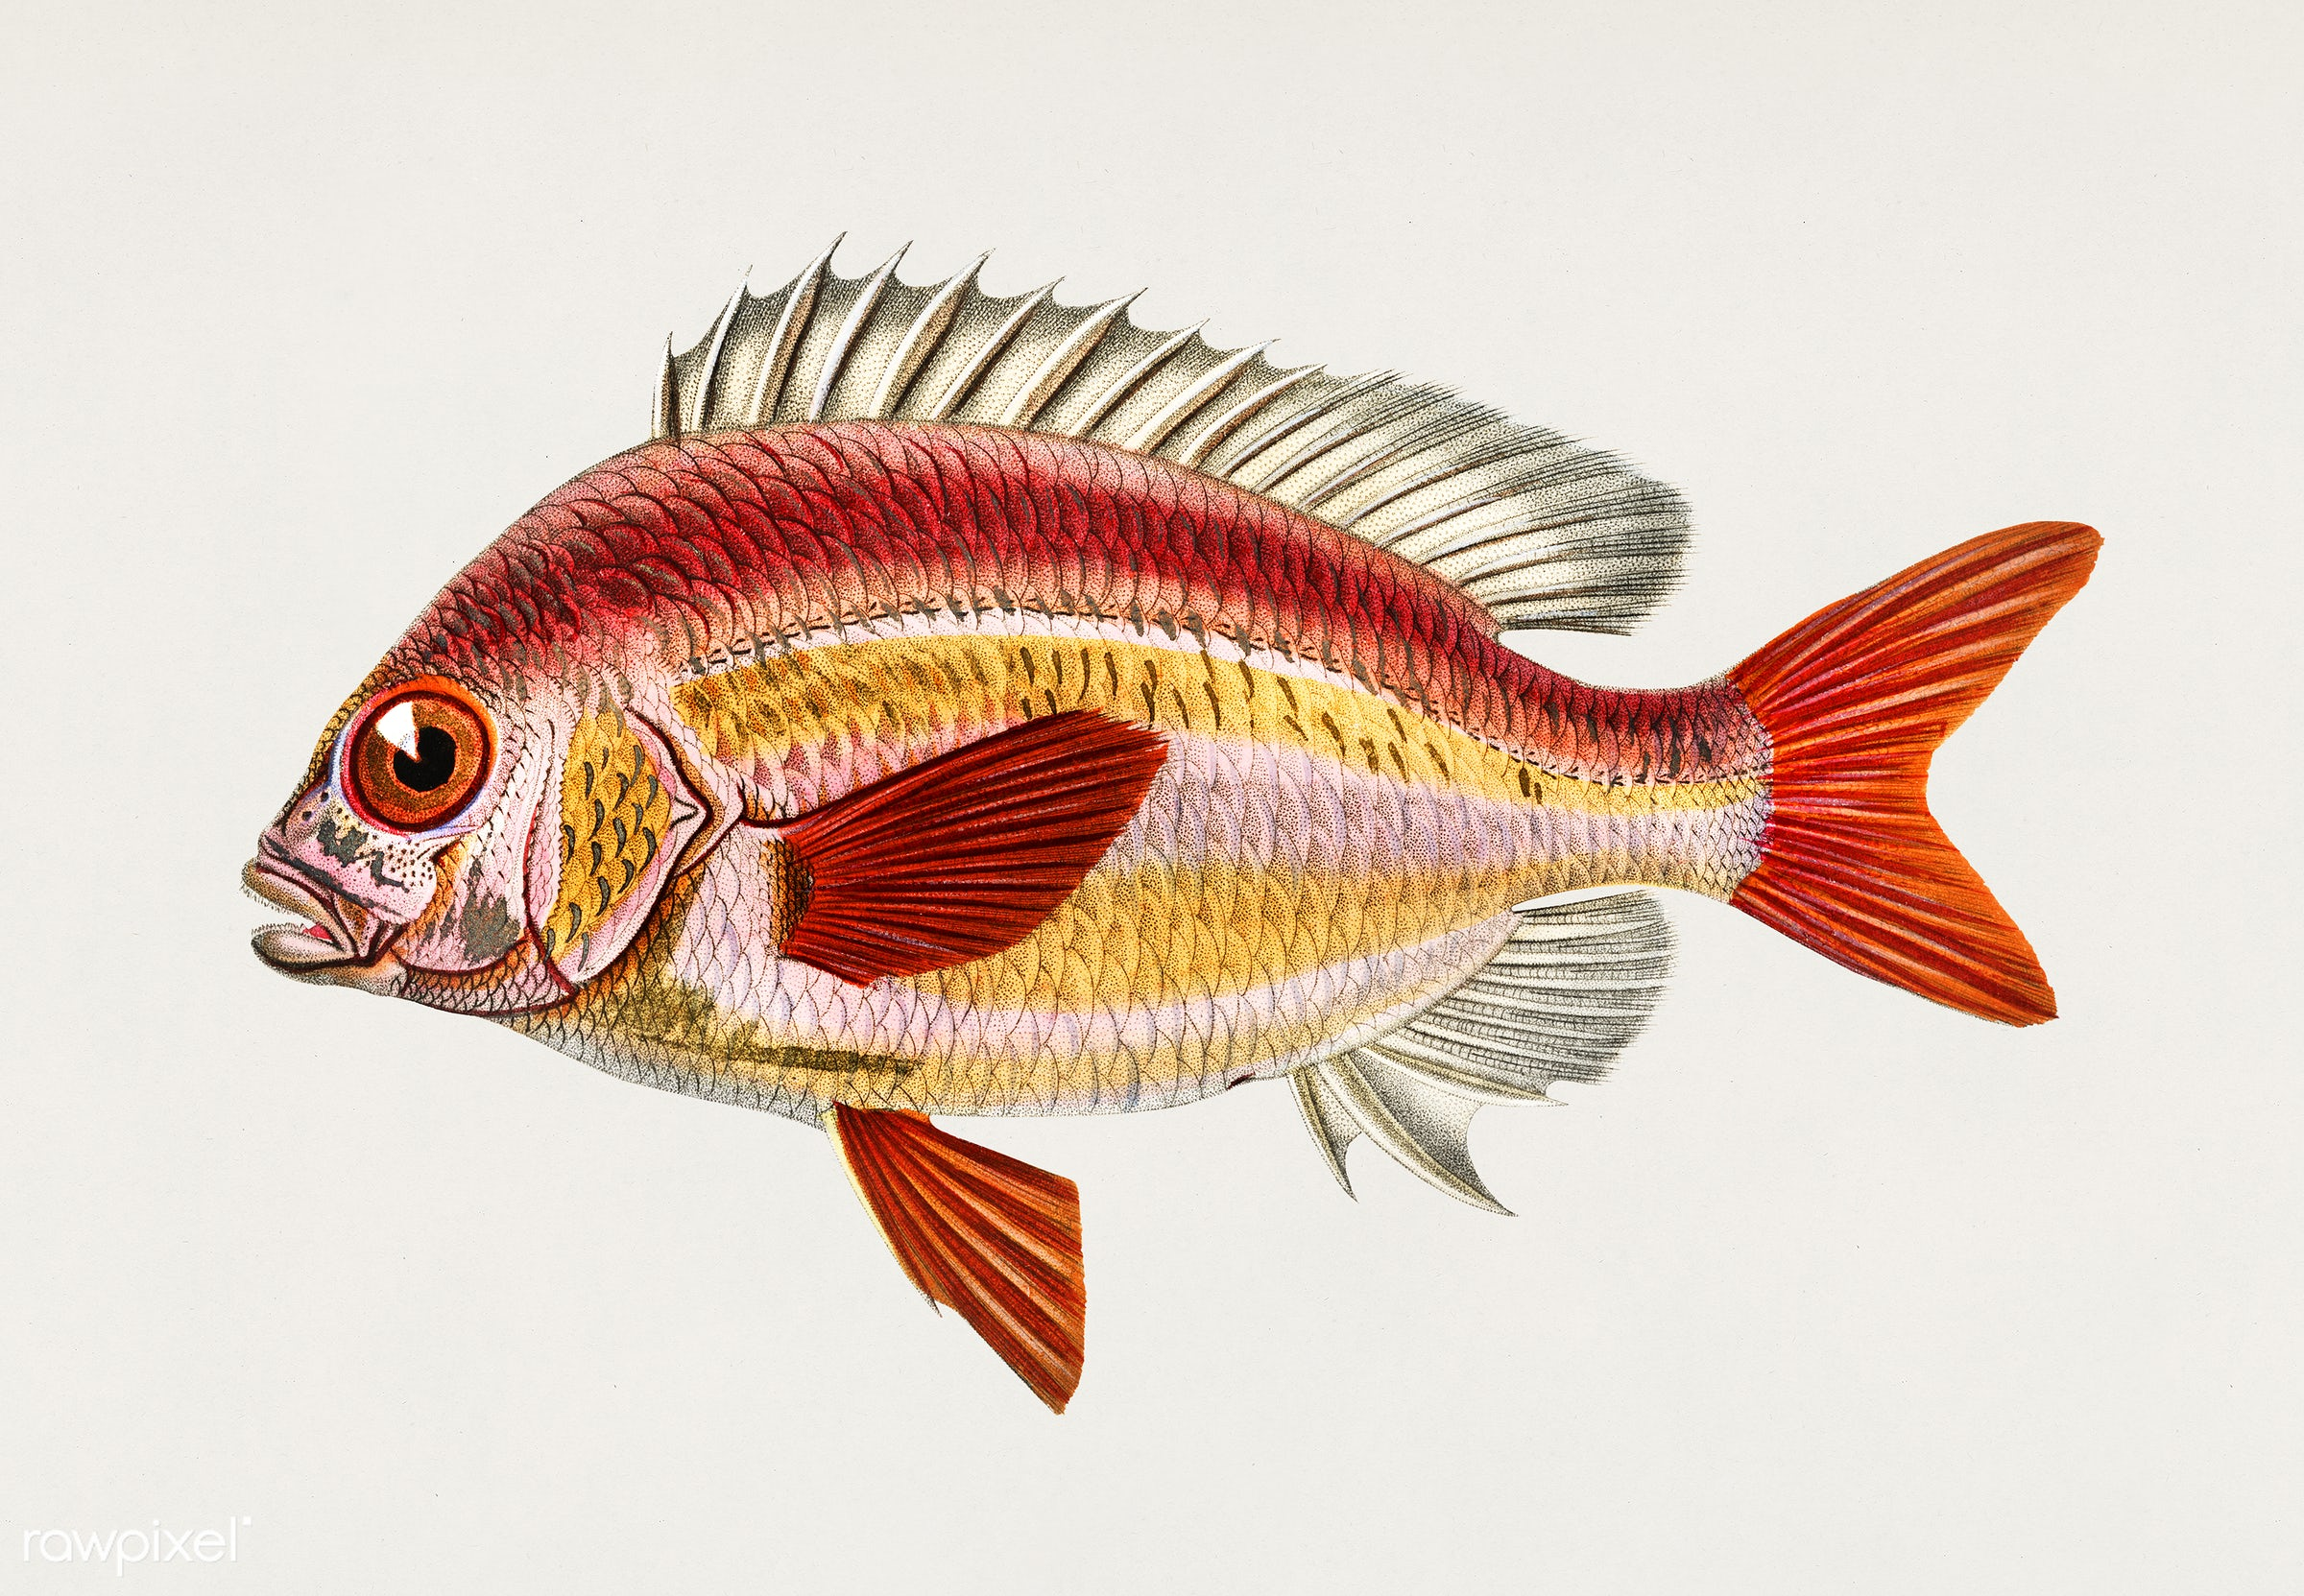 Whitecheek monocle bream (Scolopsisscolopsides Vosmeri) illustrated by Charles Dessalines D' Orbigny (1806-1876)....